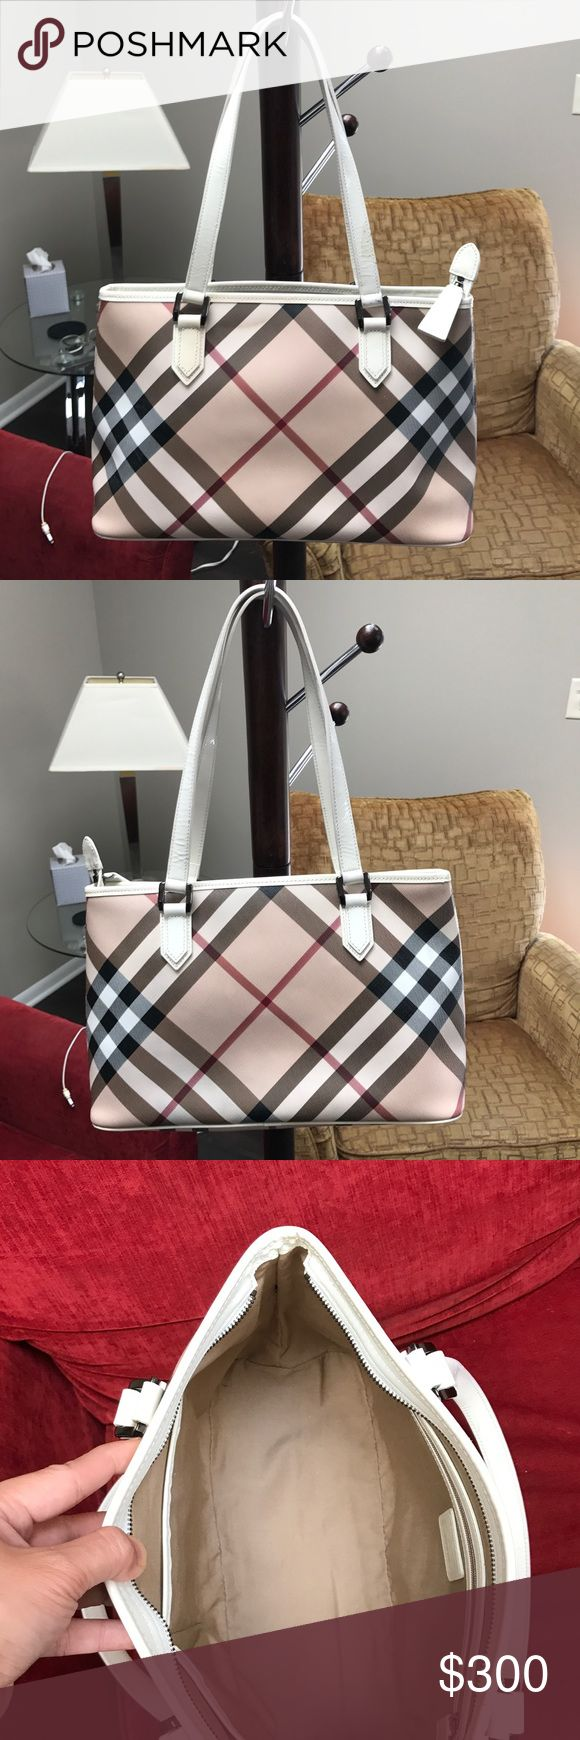 Burberry Tote Bag Authentic Tote Bag. No dustbag. Interior side is clean. Exterior side of bag has some stains and scuff in handles and somes scuffs in the 4 bottom side. Overall the bag still in good condition. Check all the pictures. Negotiable Burberry Bags Totes